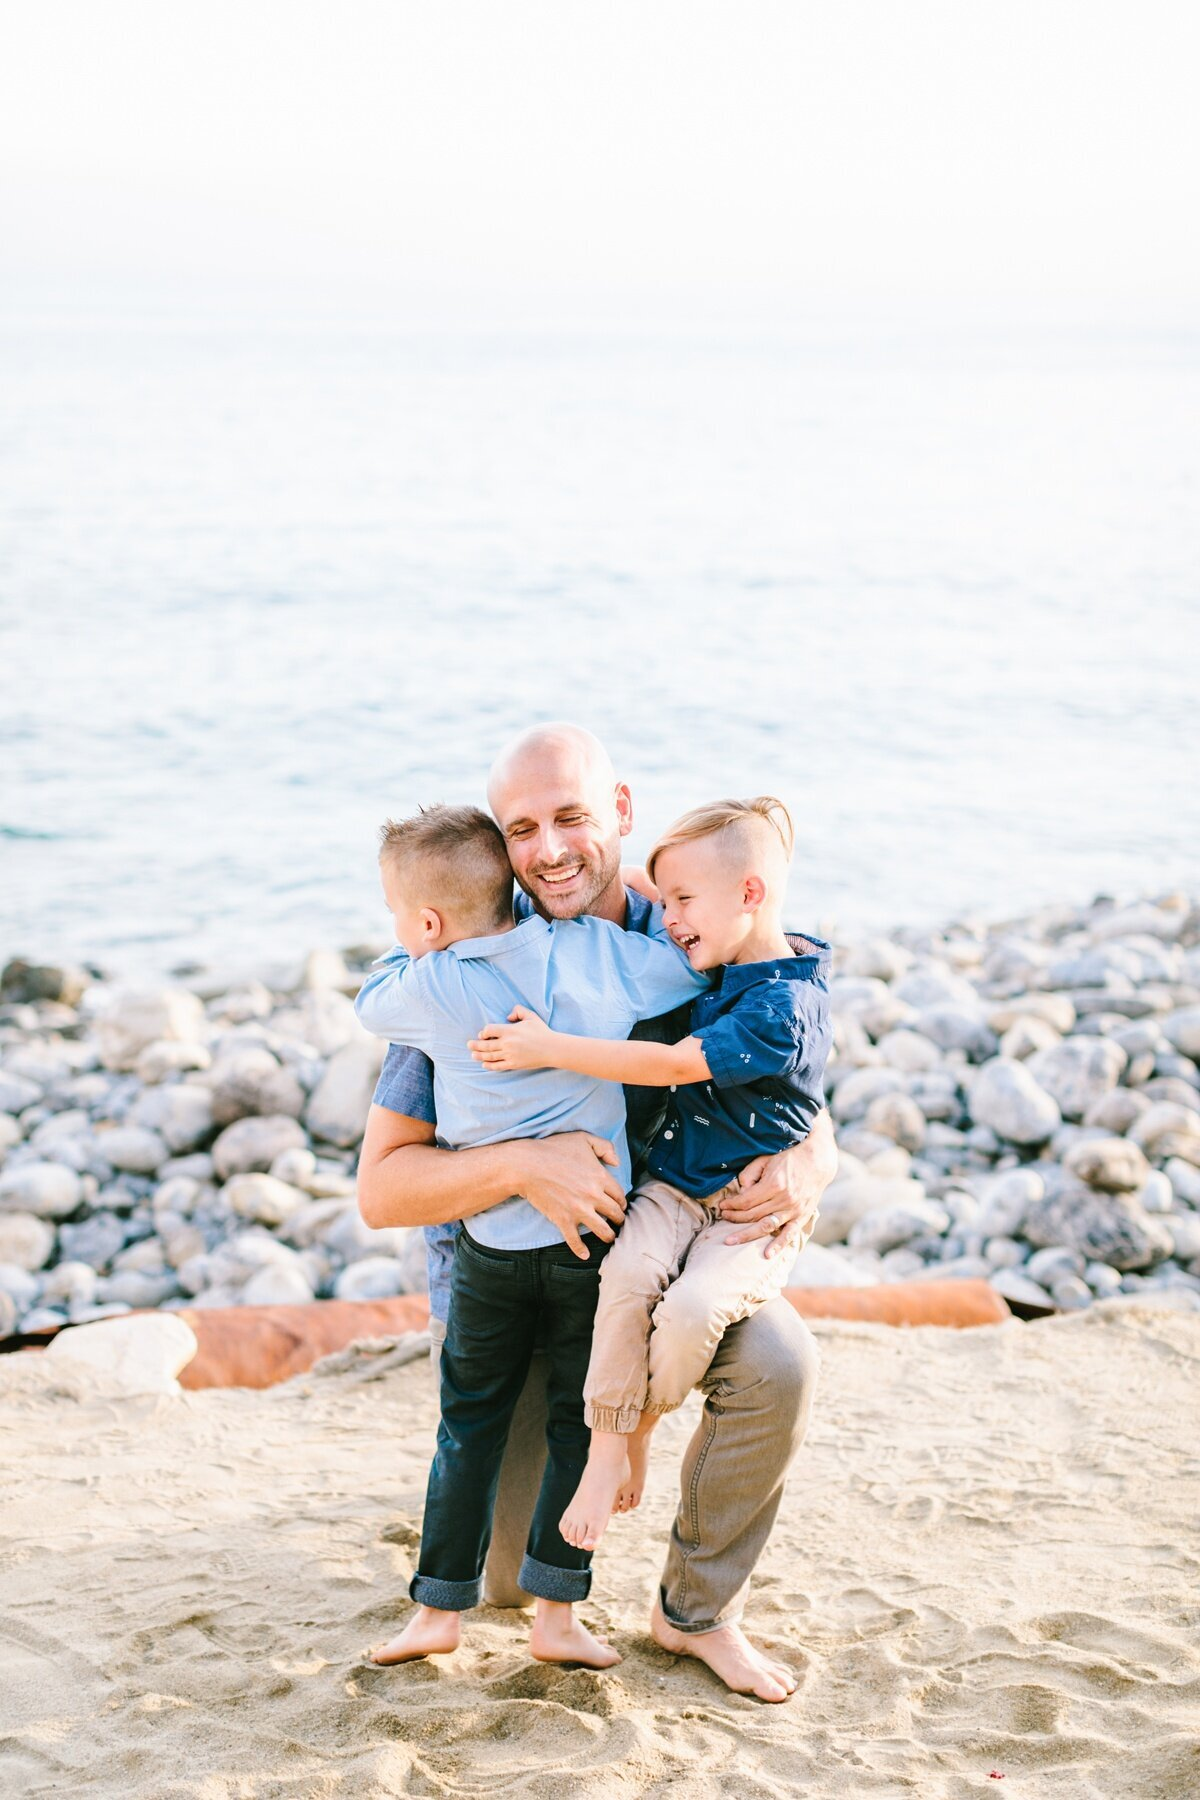 California Family Photography-Texas Family Photographer-Family Photos-Jodee Debes Photography-49